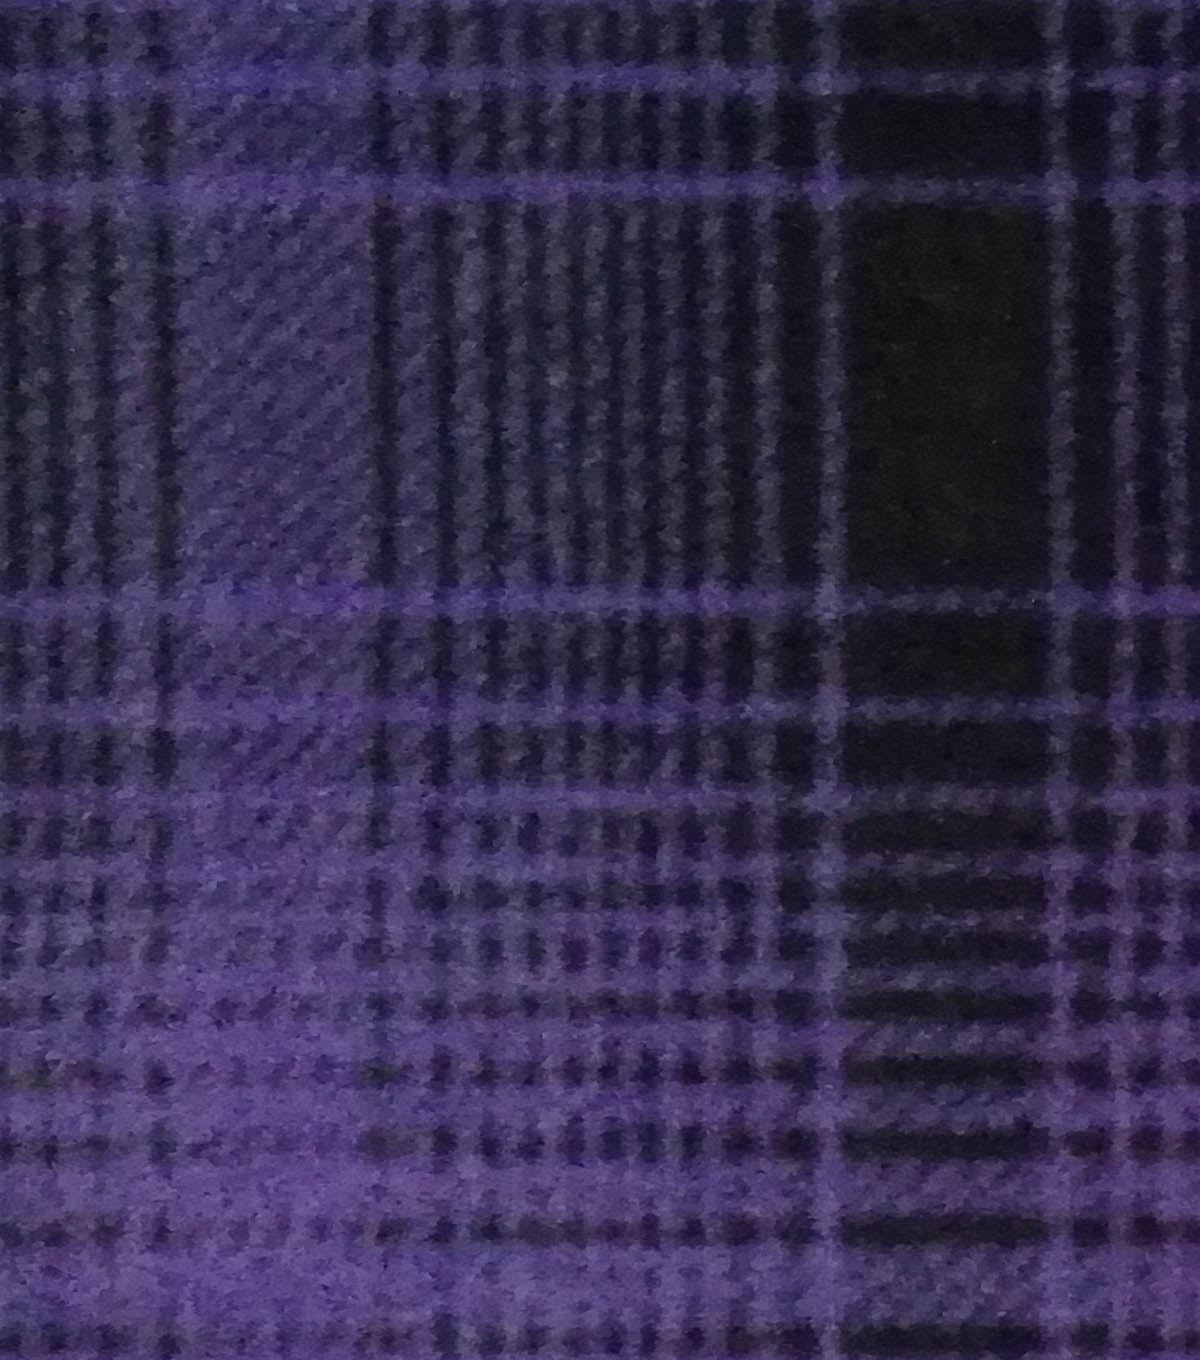 Specialty Fleece Fabric-Purple Mica & Black Plaid